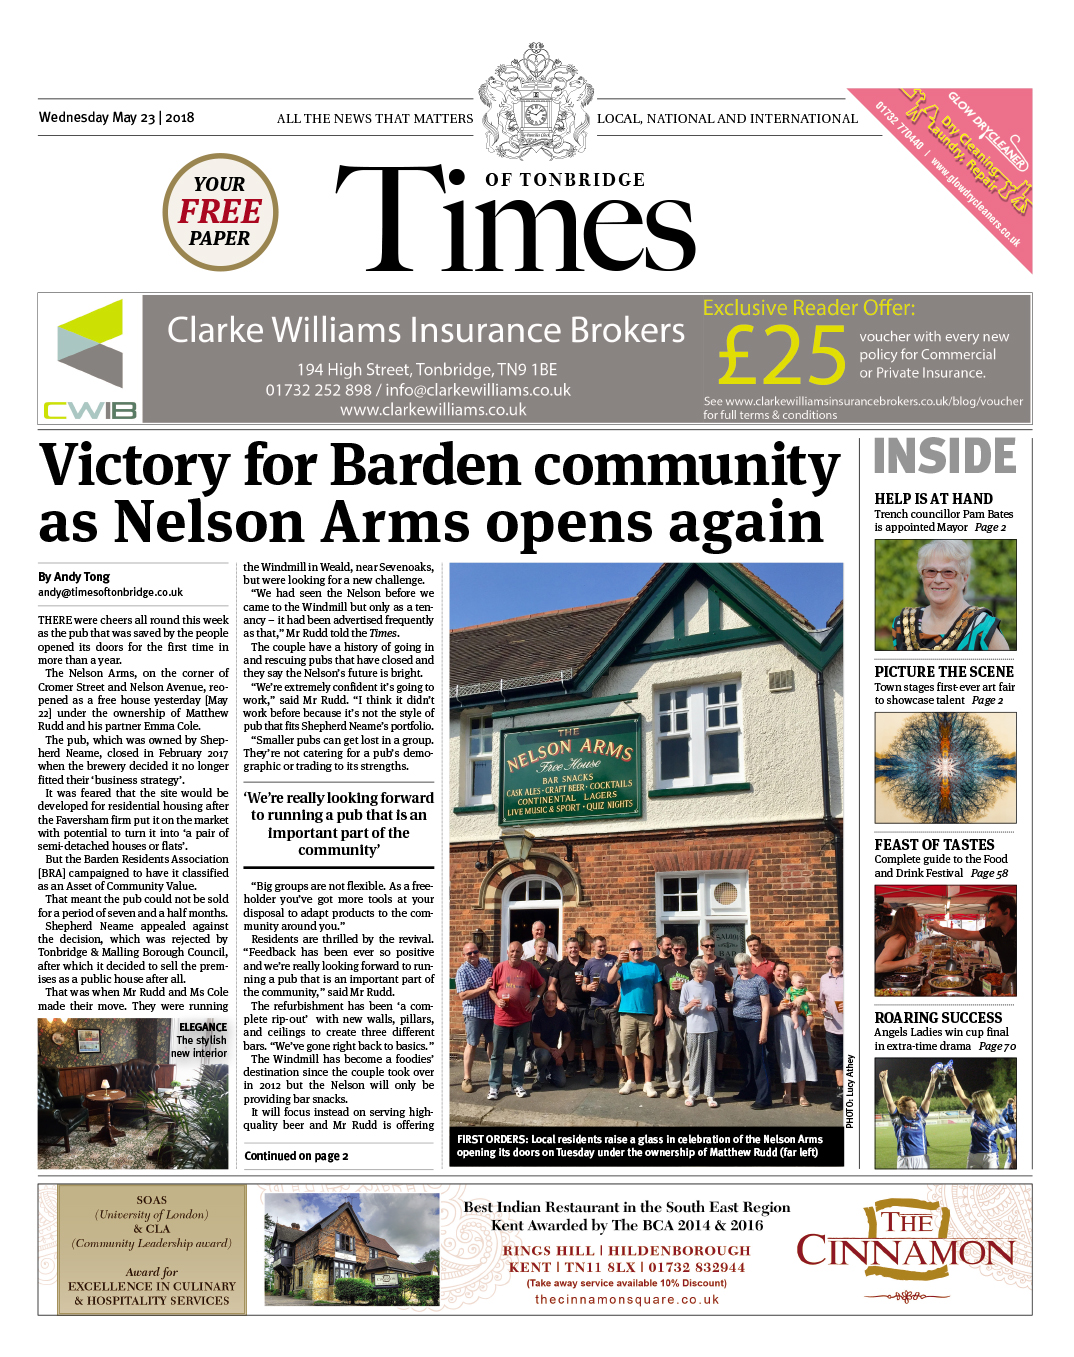 Read the Times of Tonbridge 23rd May 2018